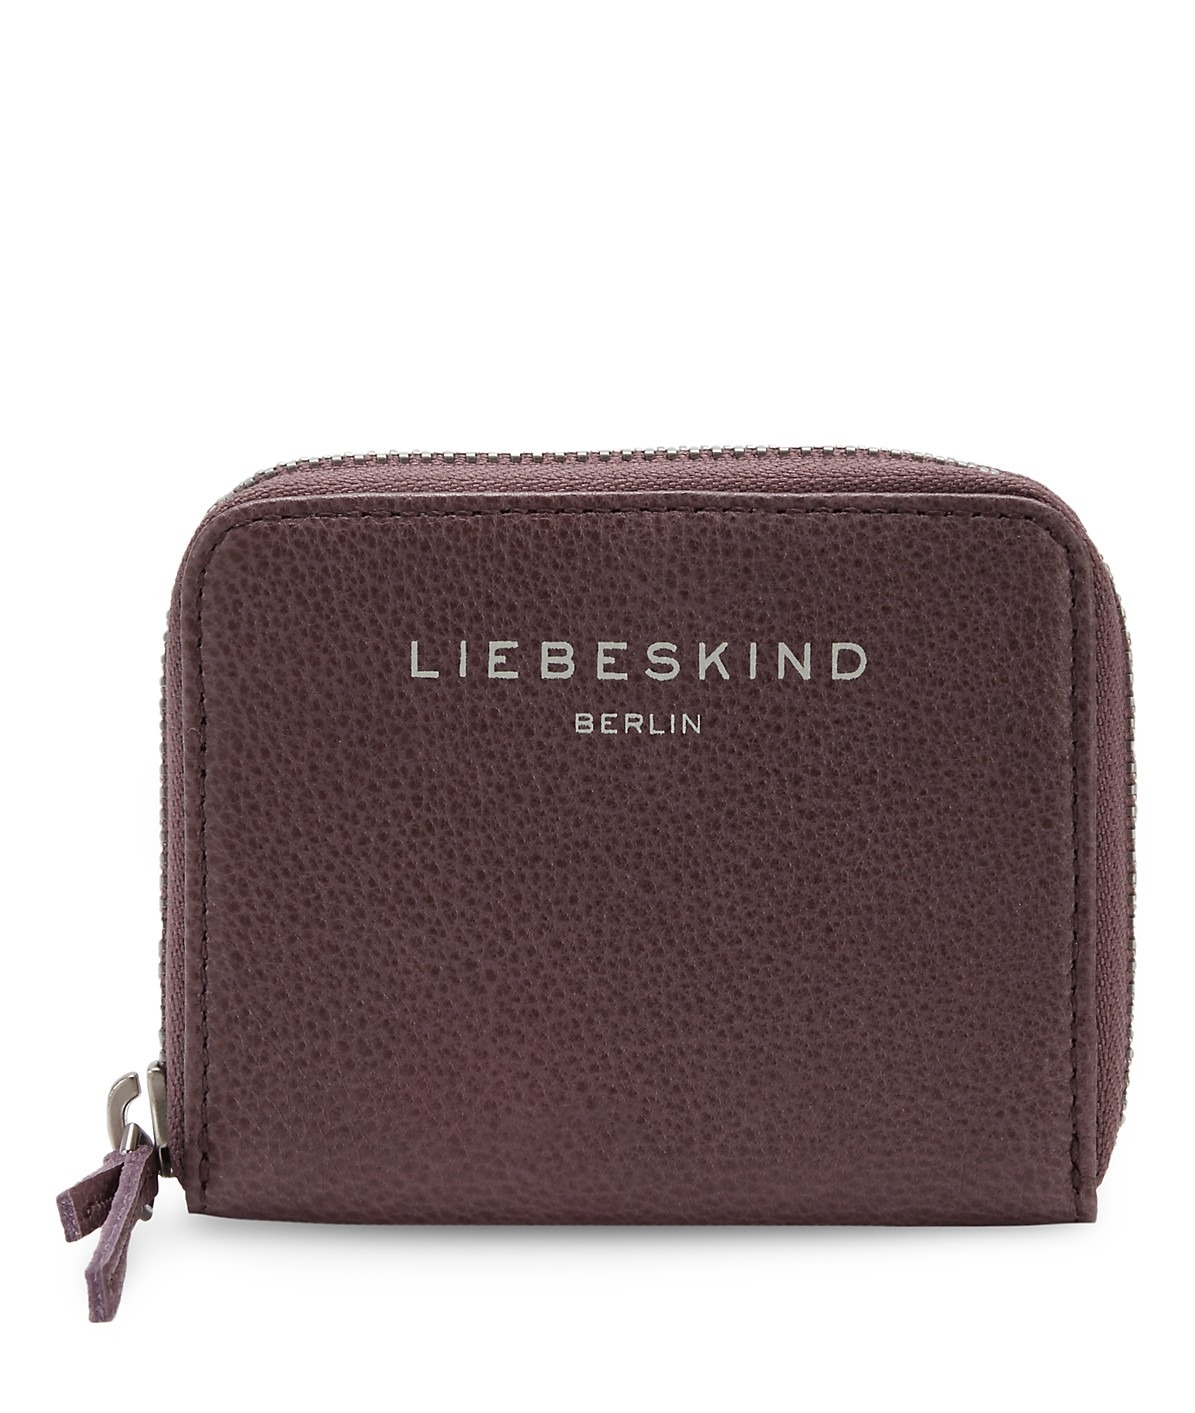 Purse DotF7 from liebeskind